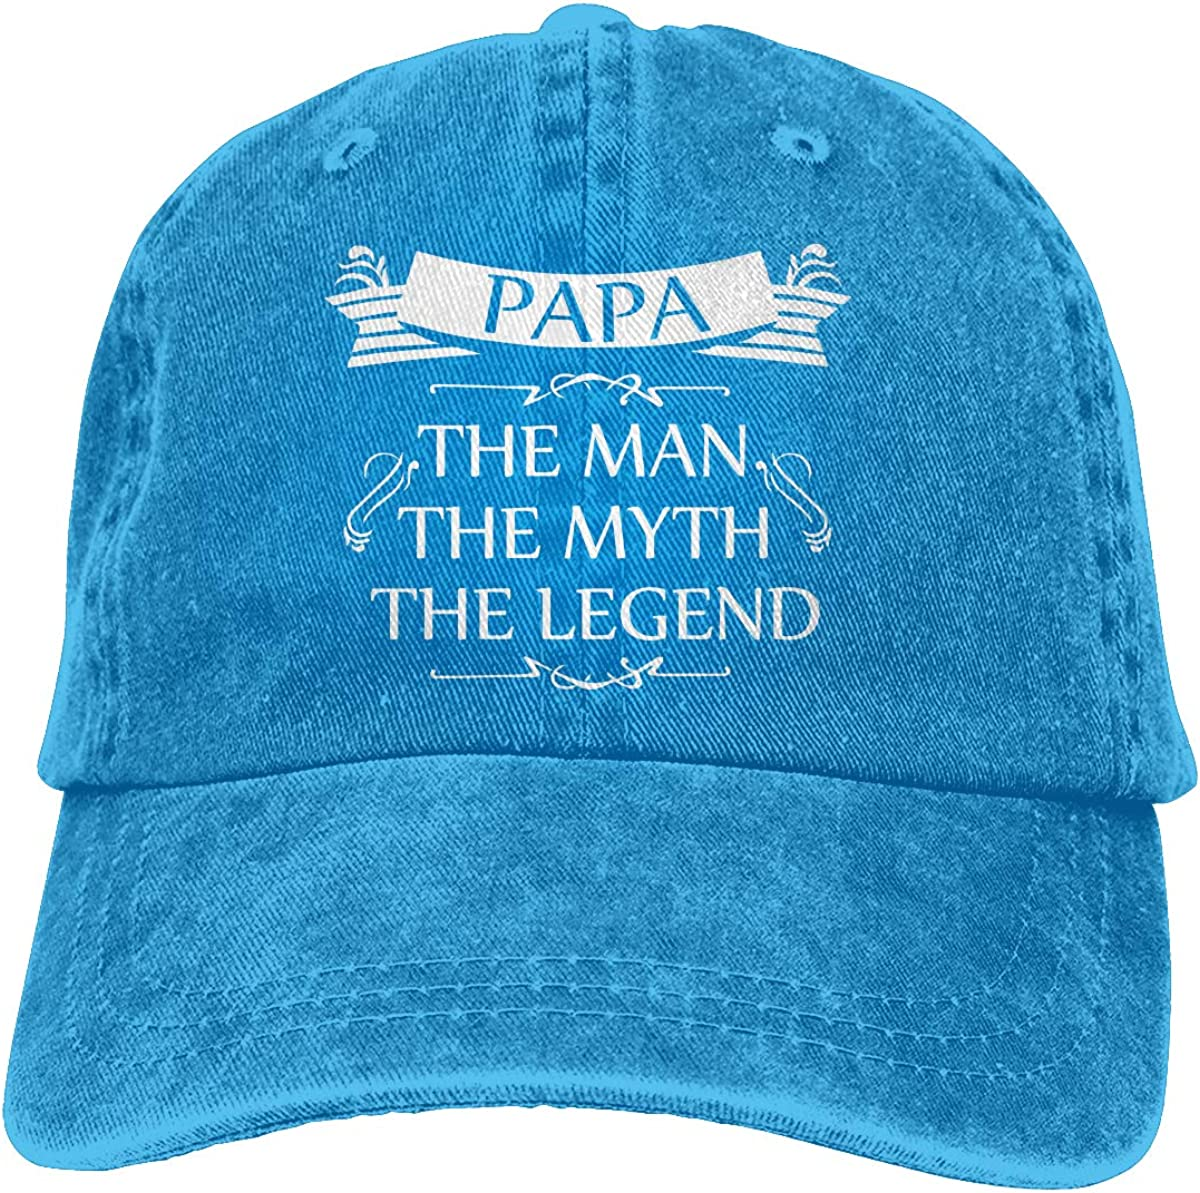 The Legend Adult Personalize Cowboy Sun Hat Adjustable Baseball Cap The Myth Mens Papa The Man